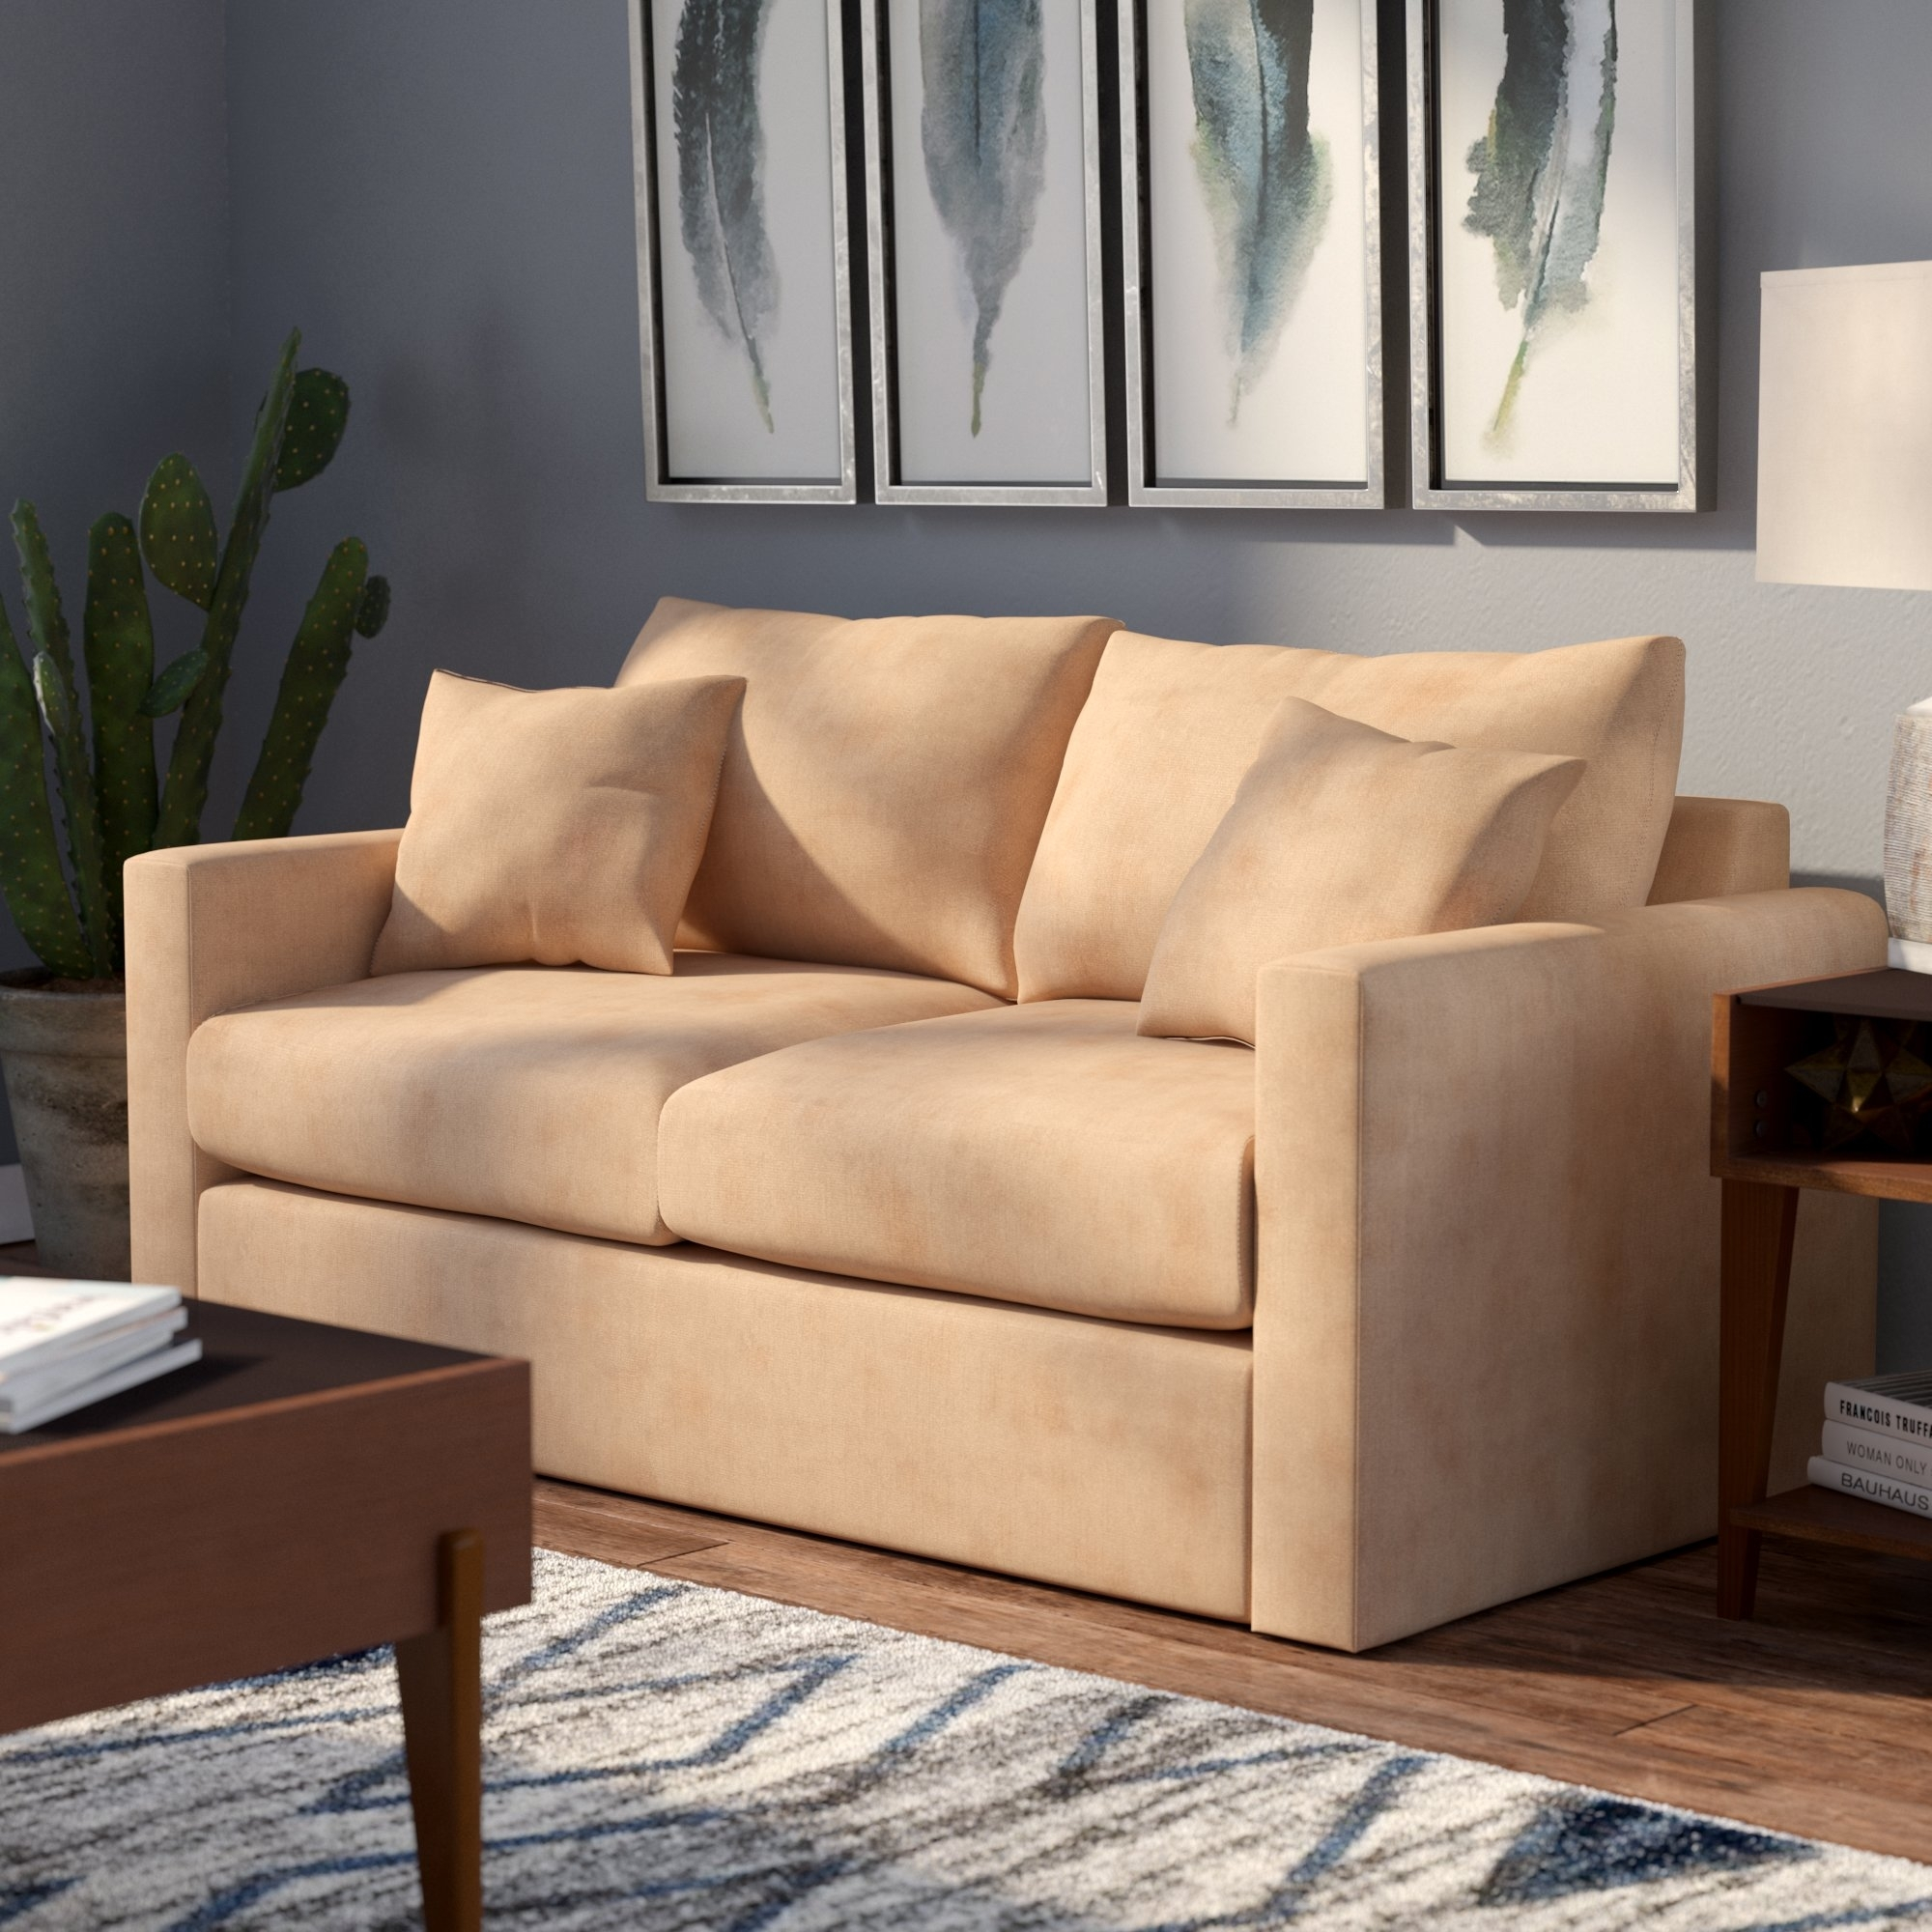 Furniture : Mattress Firm 77057 Sleeper Sectional Sofa For Small In Tuscaloosa Sectional Sofas (View 2 of 10)